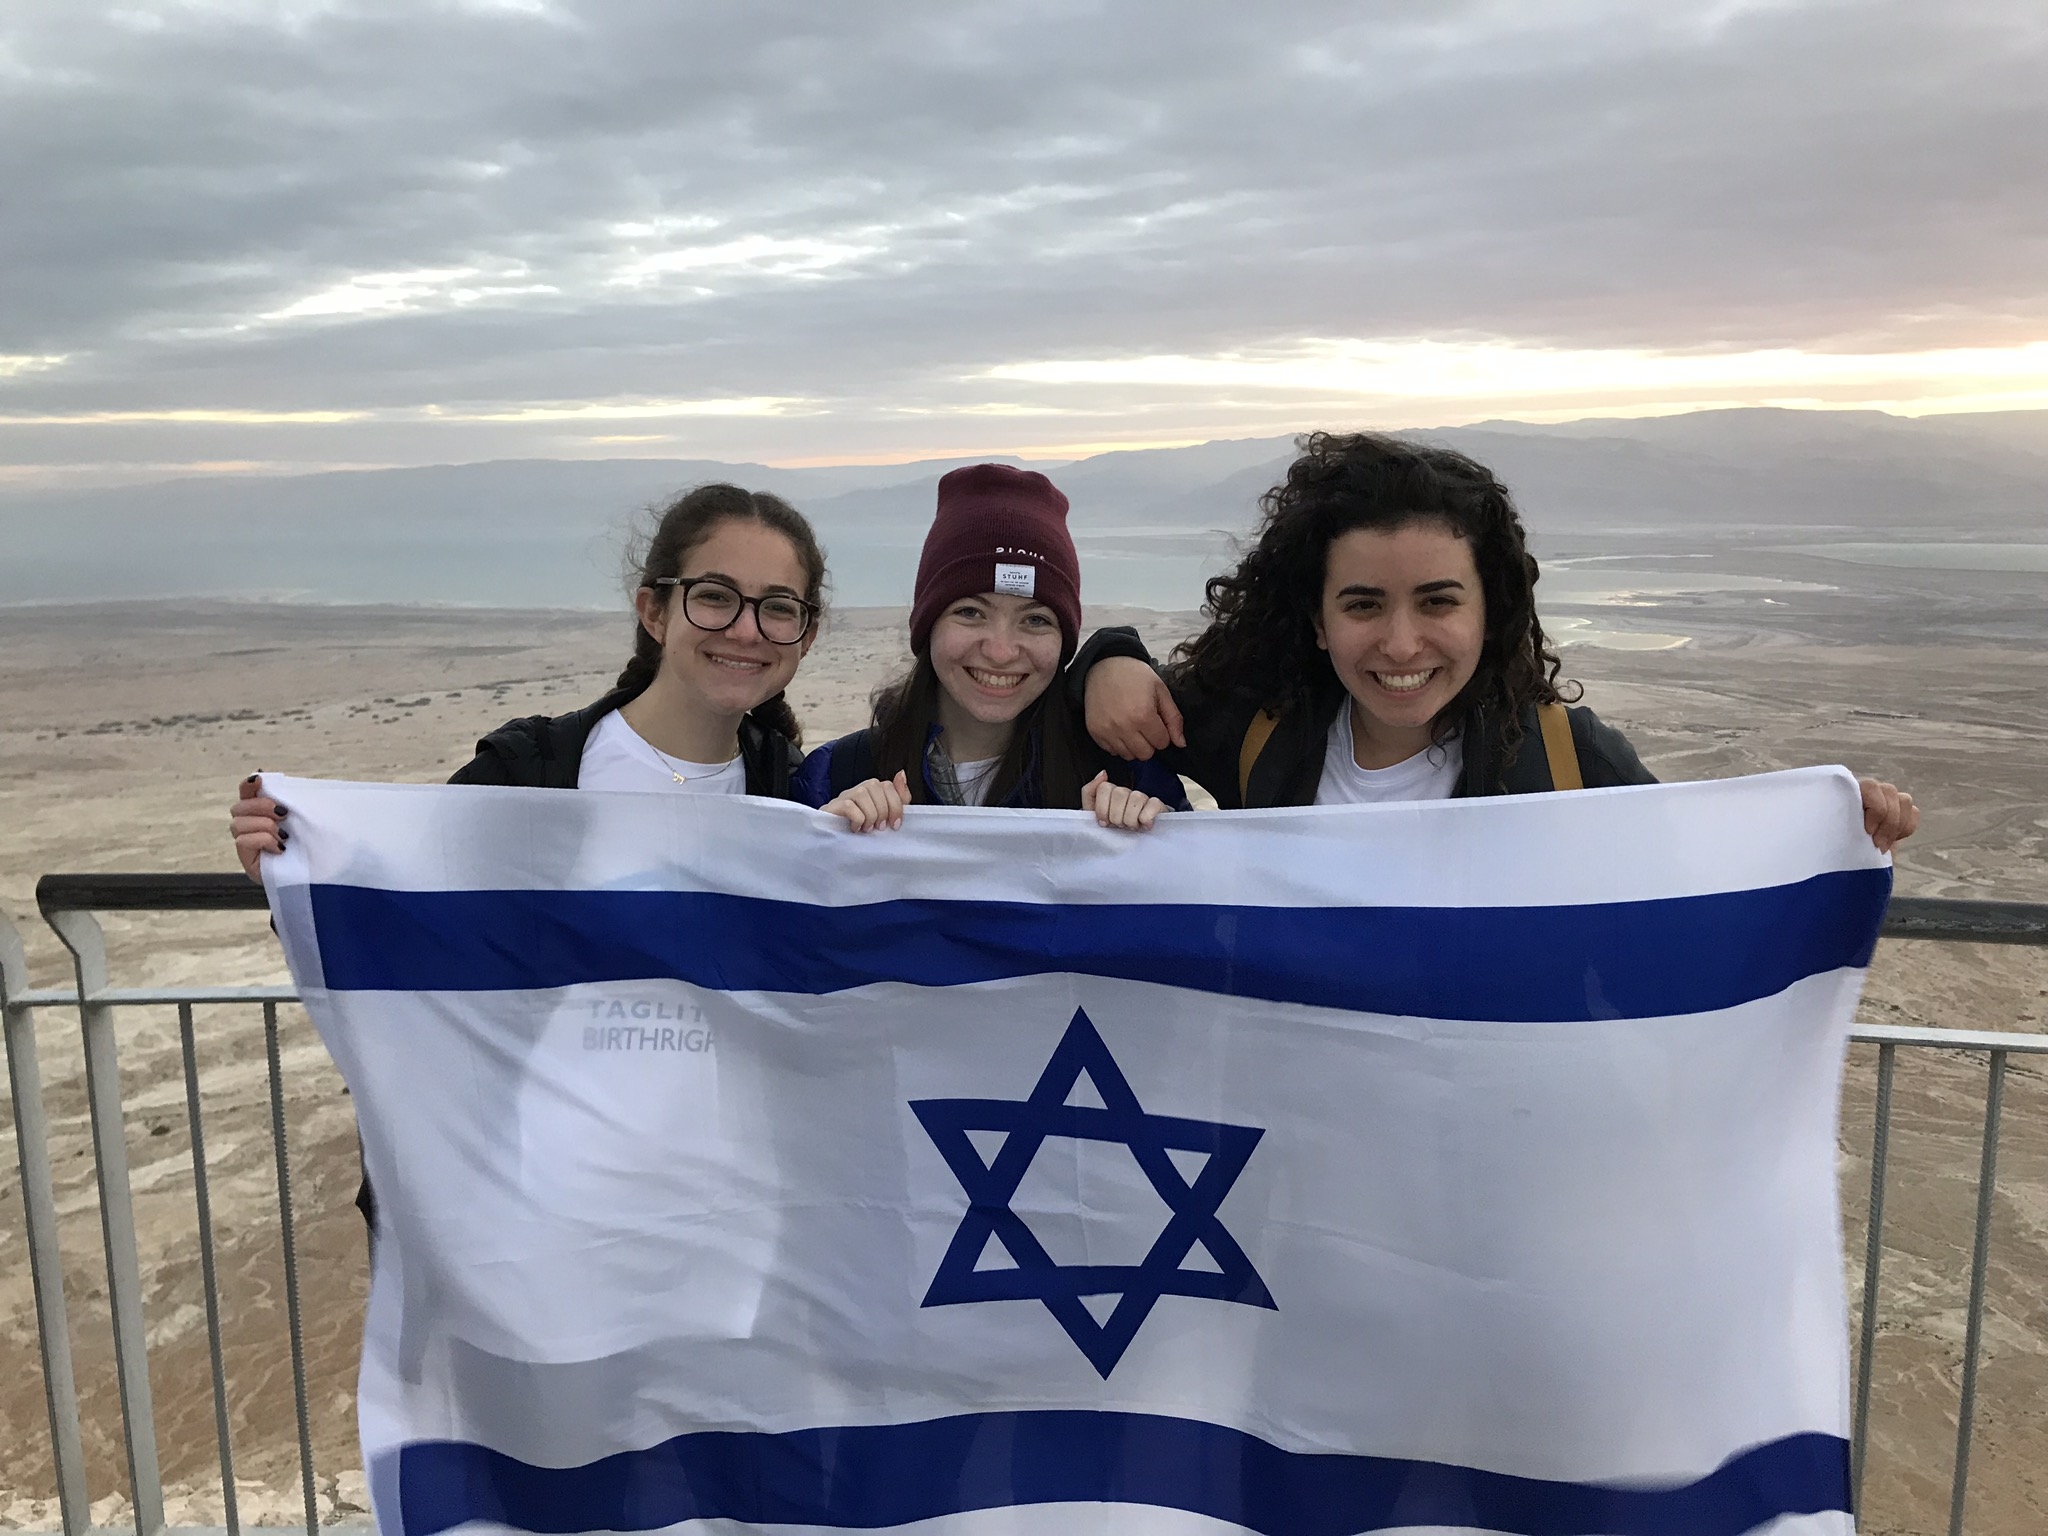 58-Amys-Birthright-Trip